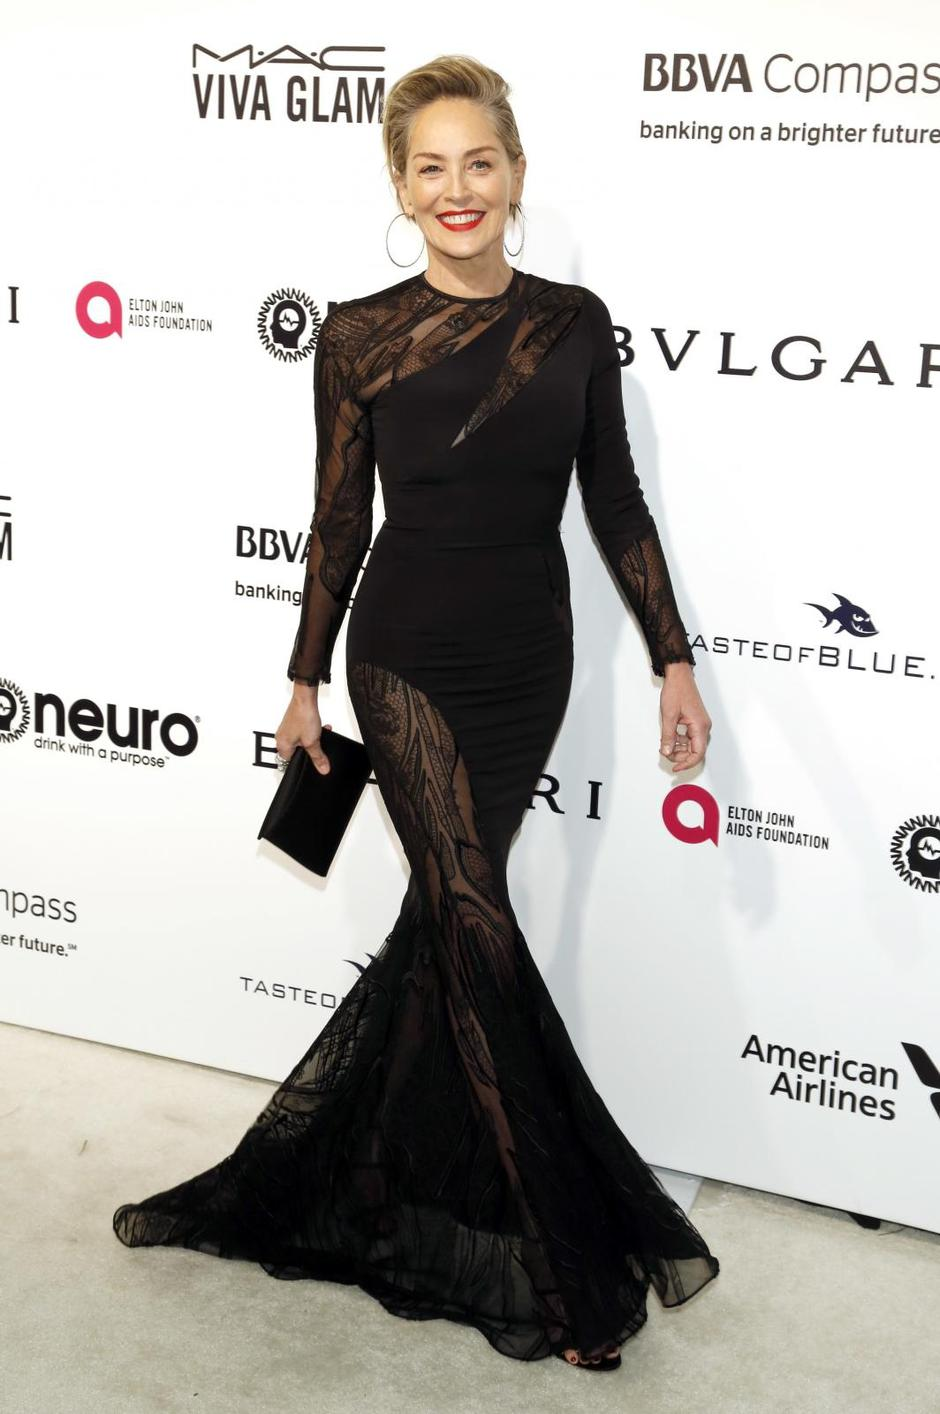 25th Annual Elton John AIDS Foundation's Academy Awards Viewing Party - Arrivals | Autor: Dave Bedrosian/DPA/PIXSELL